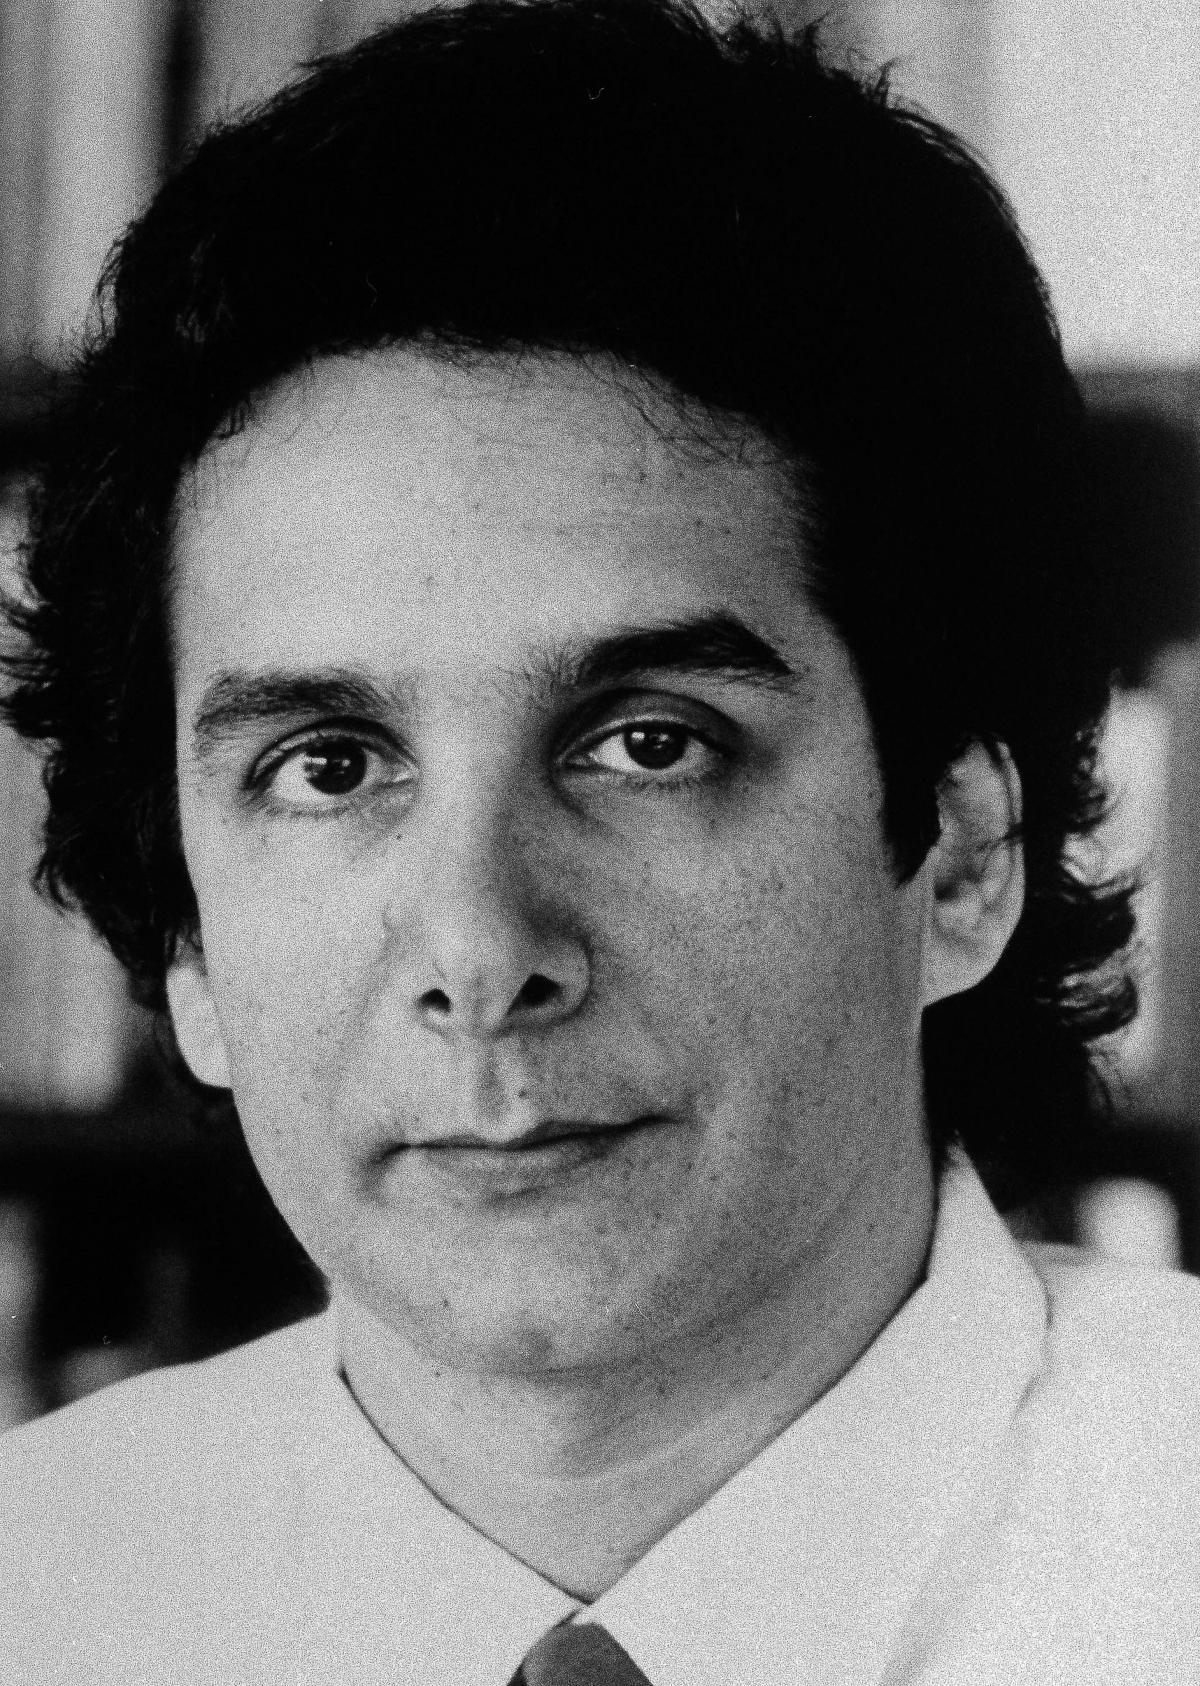 Charles Krauthammer, pictured in 1987, was a columnist at the Washington Post and a commentator on Fox News.